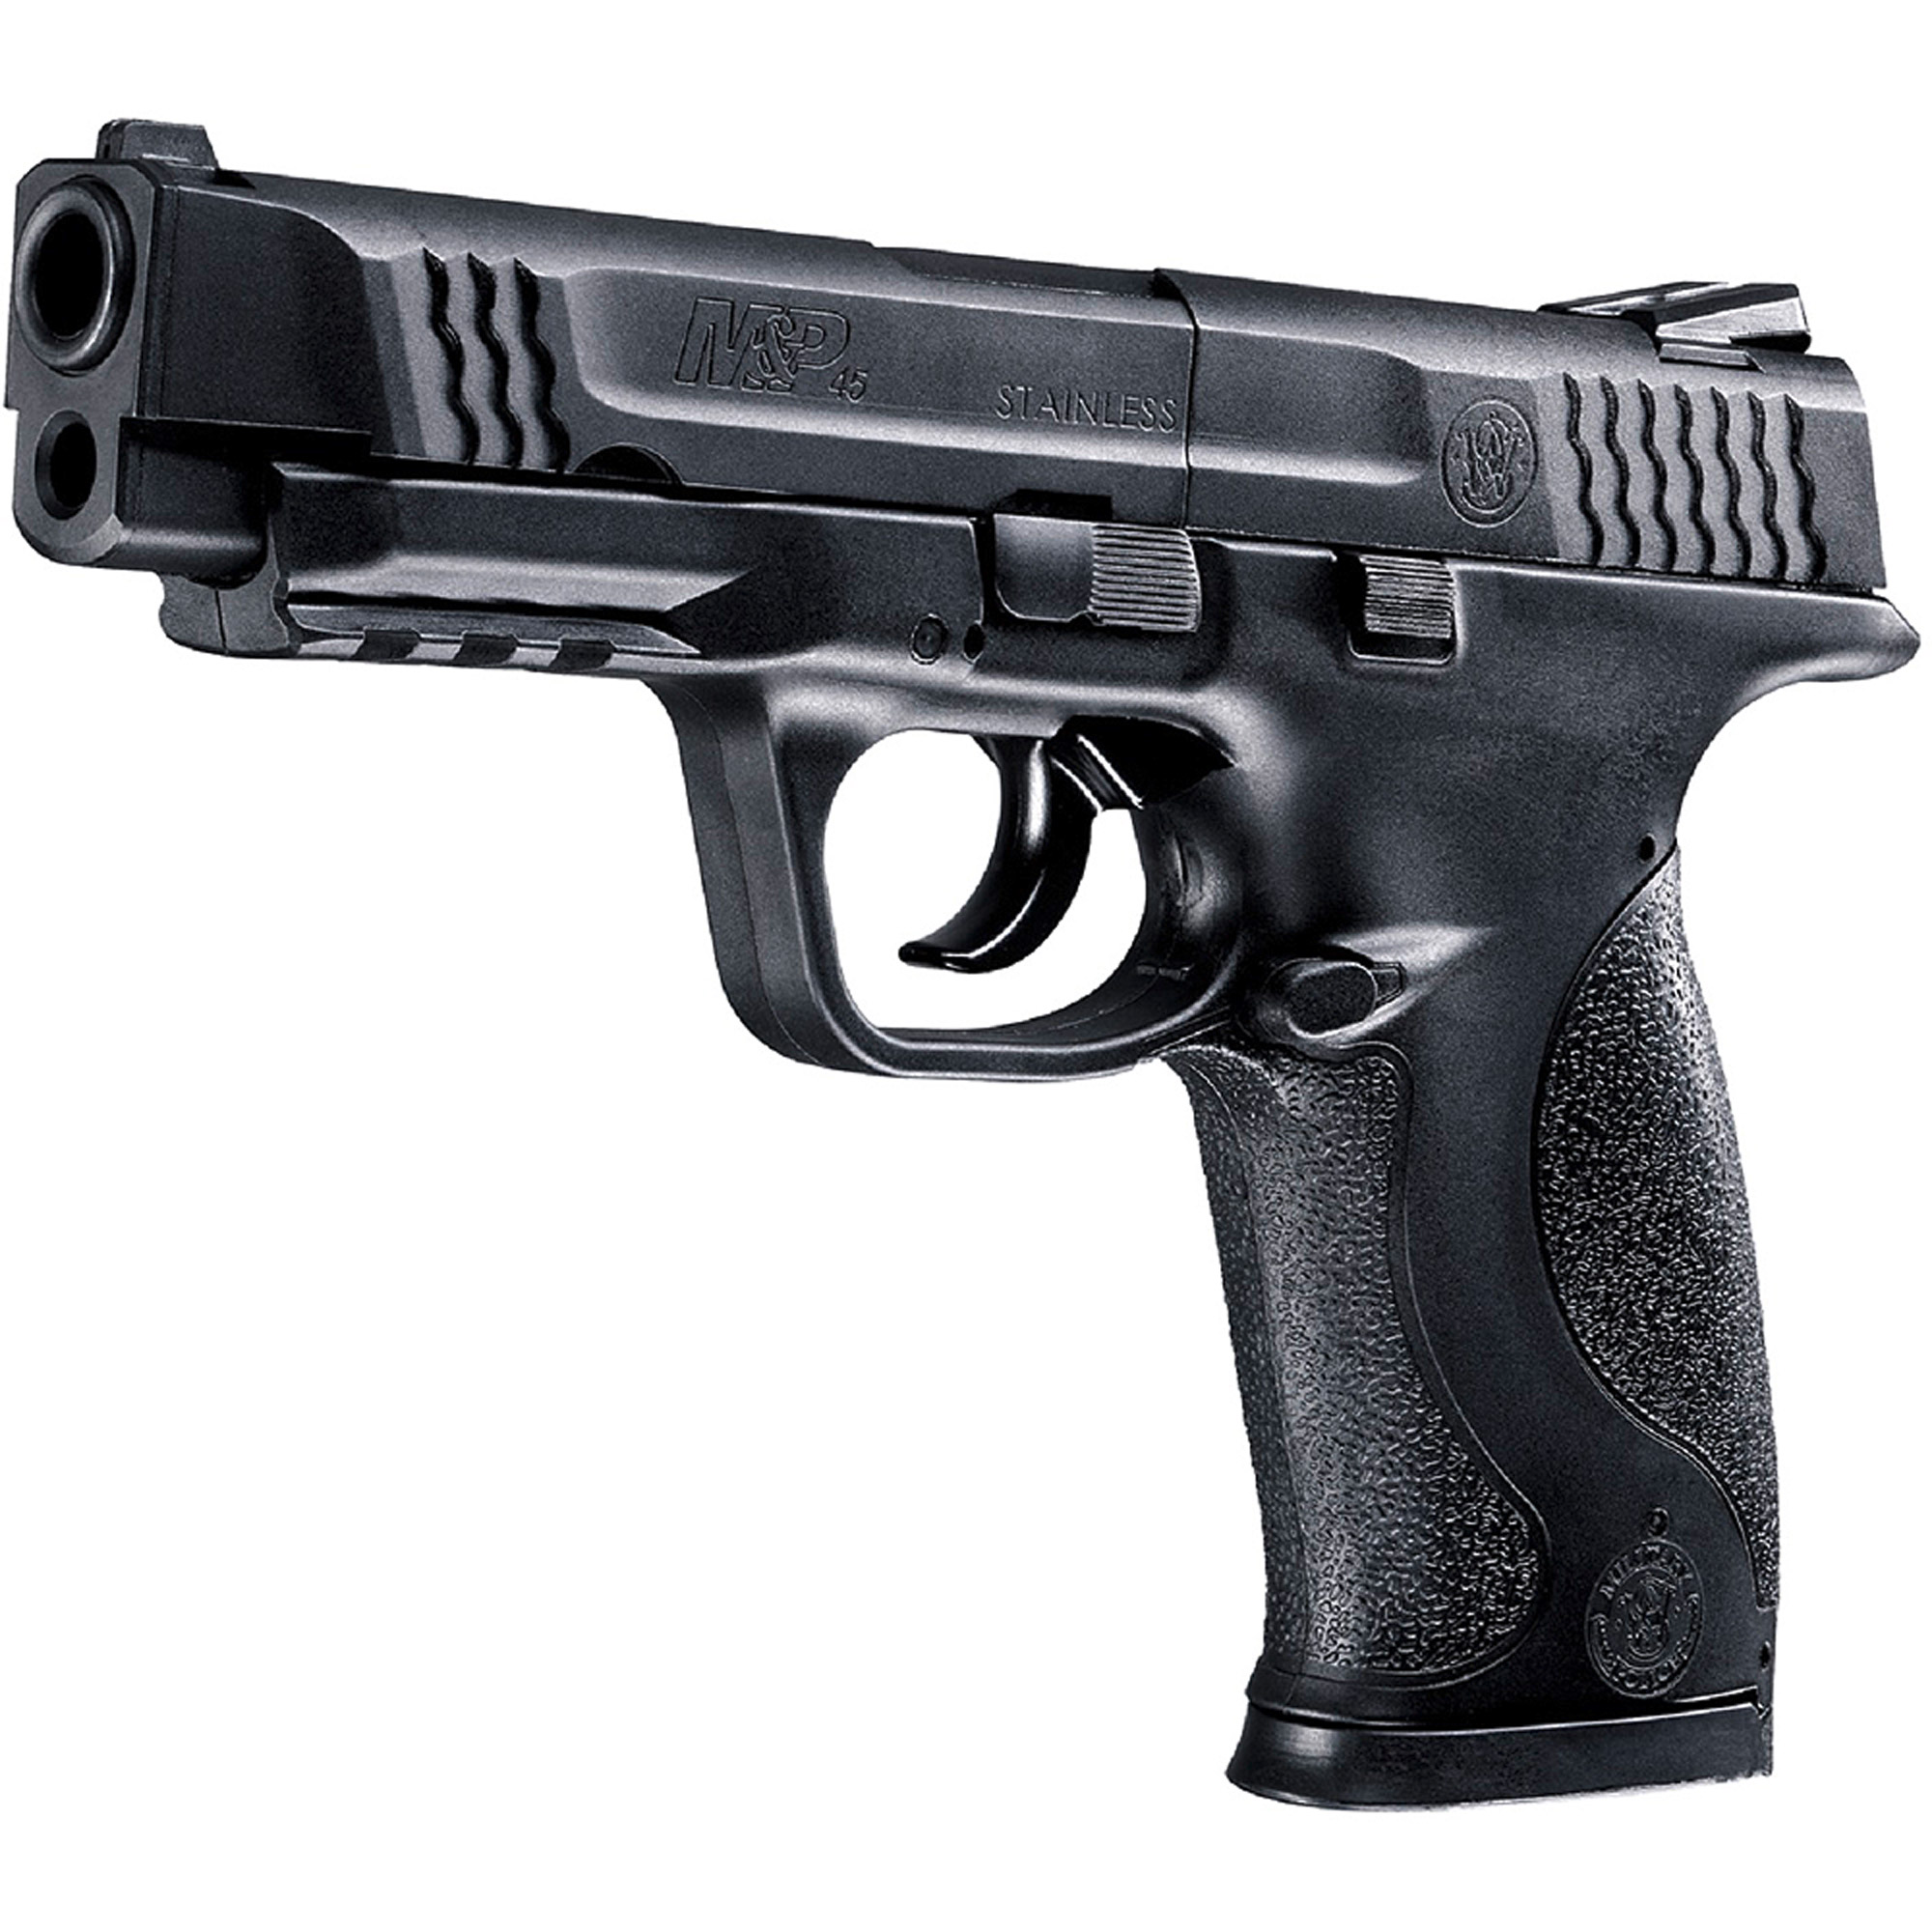 Smith and Wesson M&P 45 Air Gun, CO2 Pellet, Black